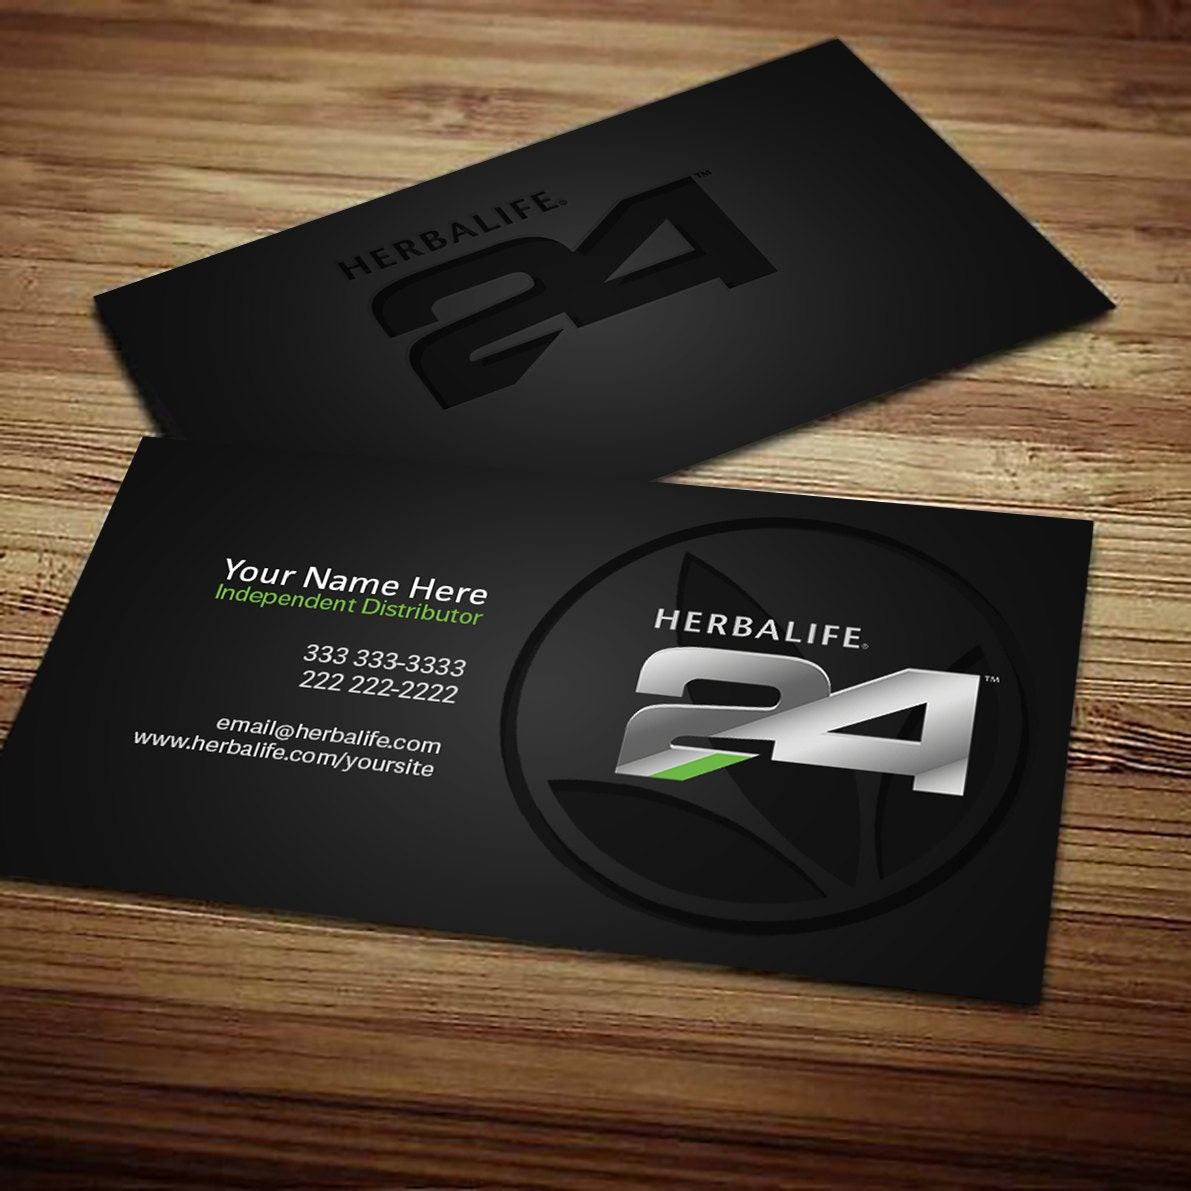 Herbalife business card digital download clean smooth by for Herbalife business card